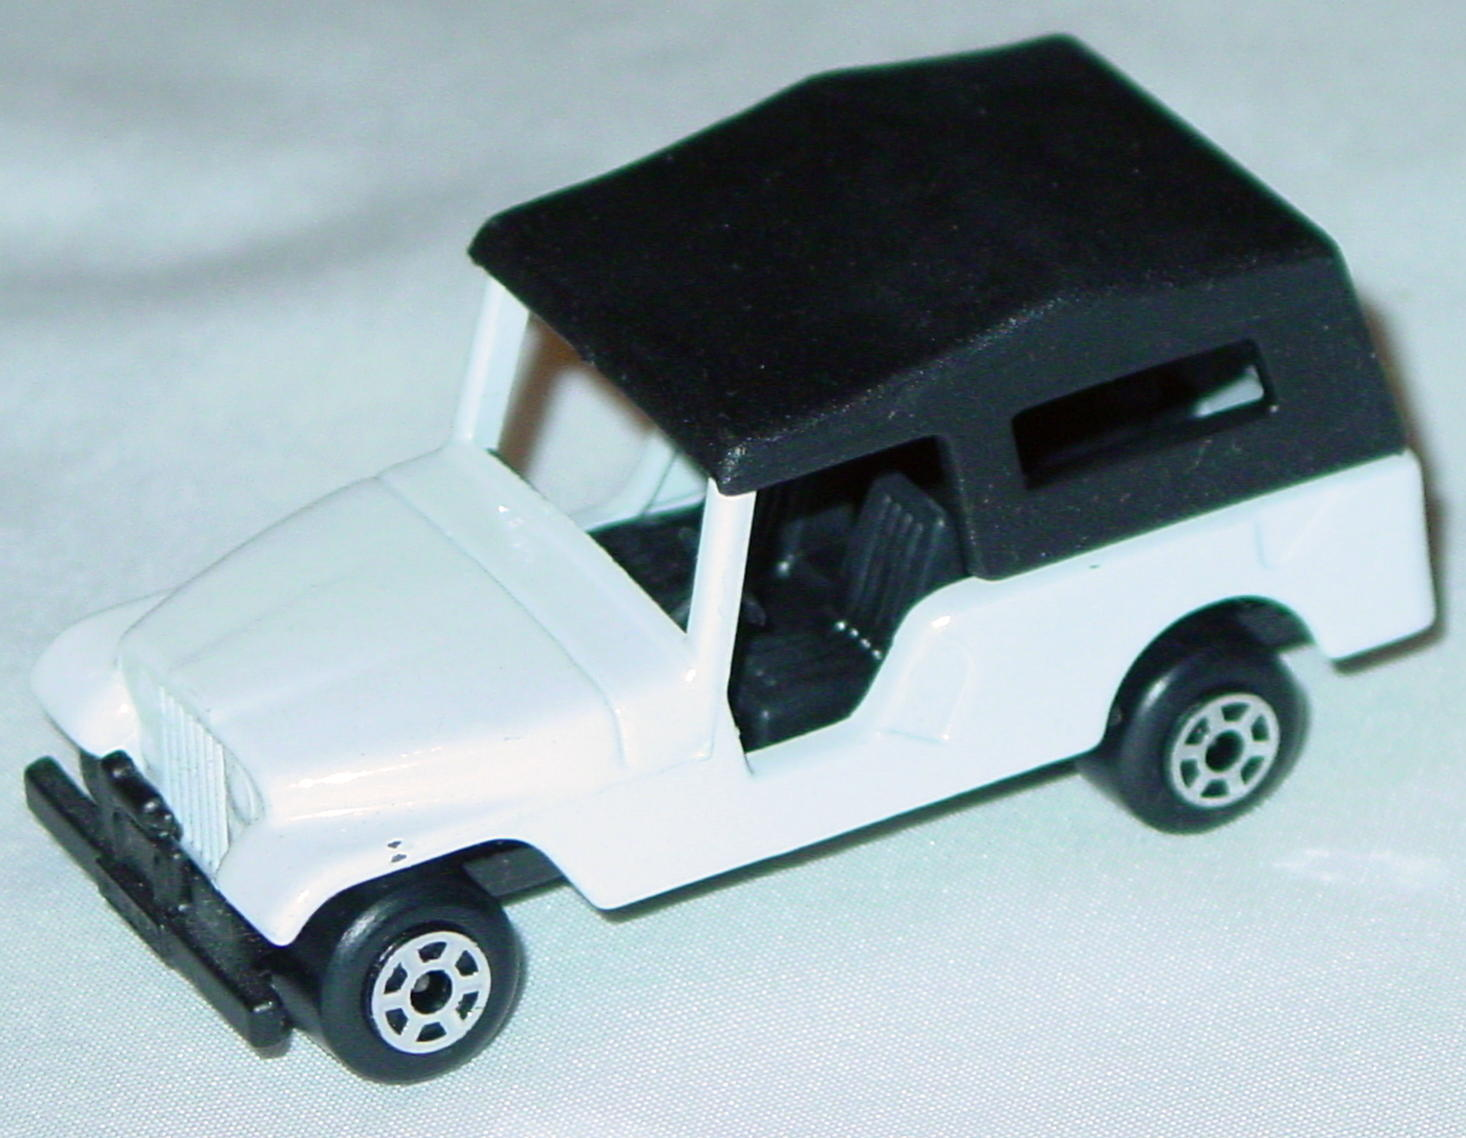 Hungarian 53 C 13 - CJ6 Jeep White black interior black roof black base 5-spoke